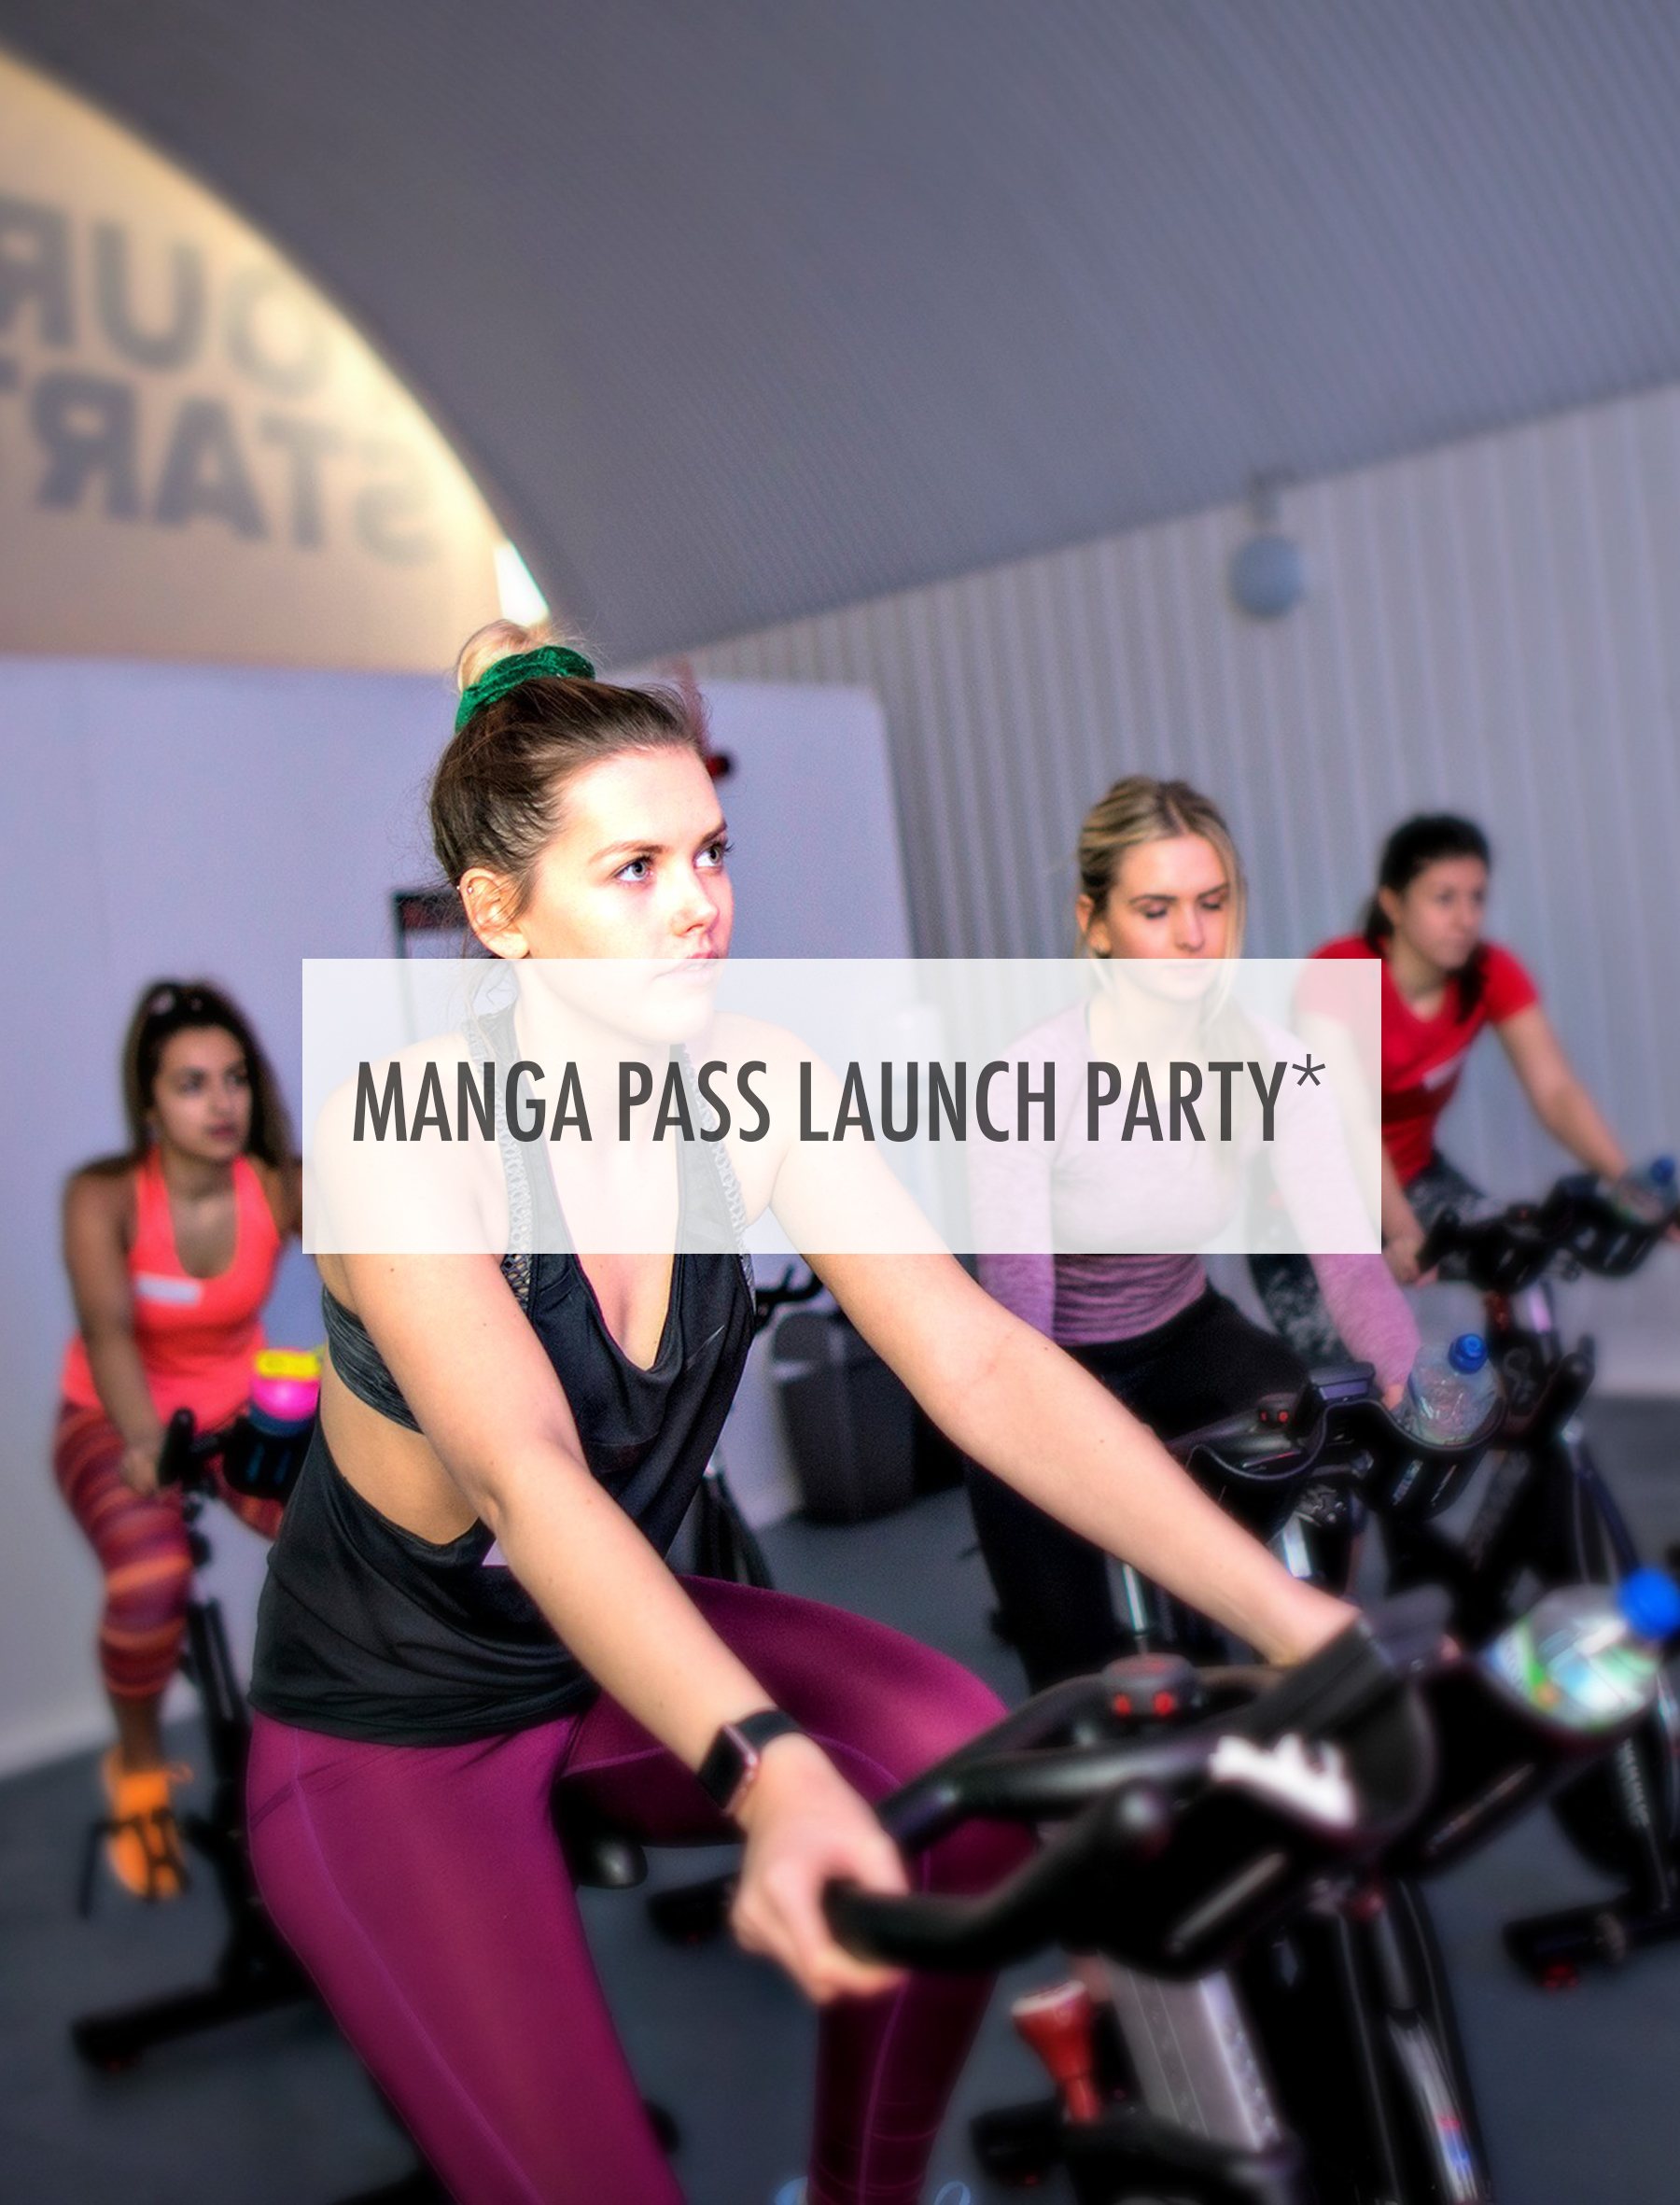 http://www.amyelizabethfashion.com/blogposts/2017/2/17/magnapass-launch-party